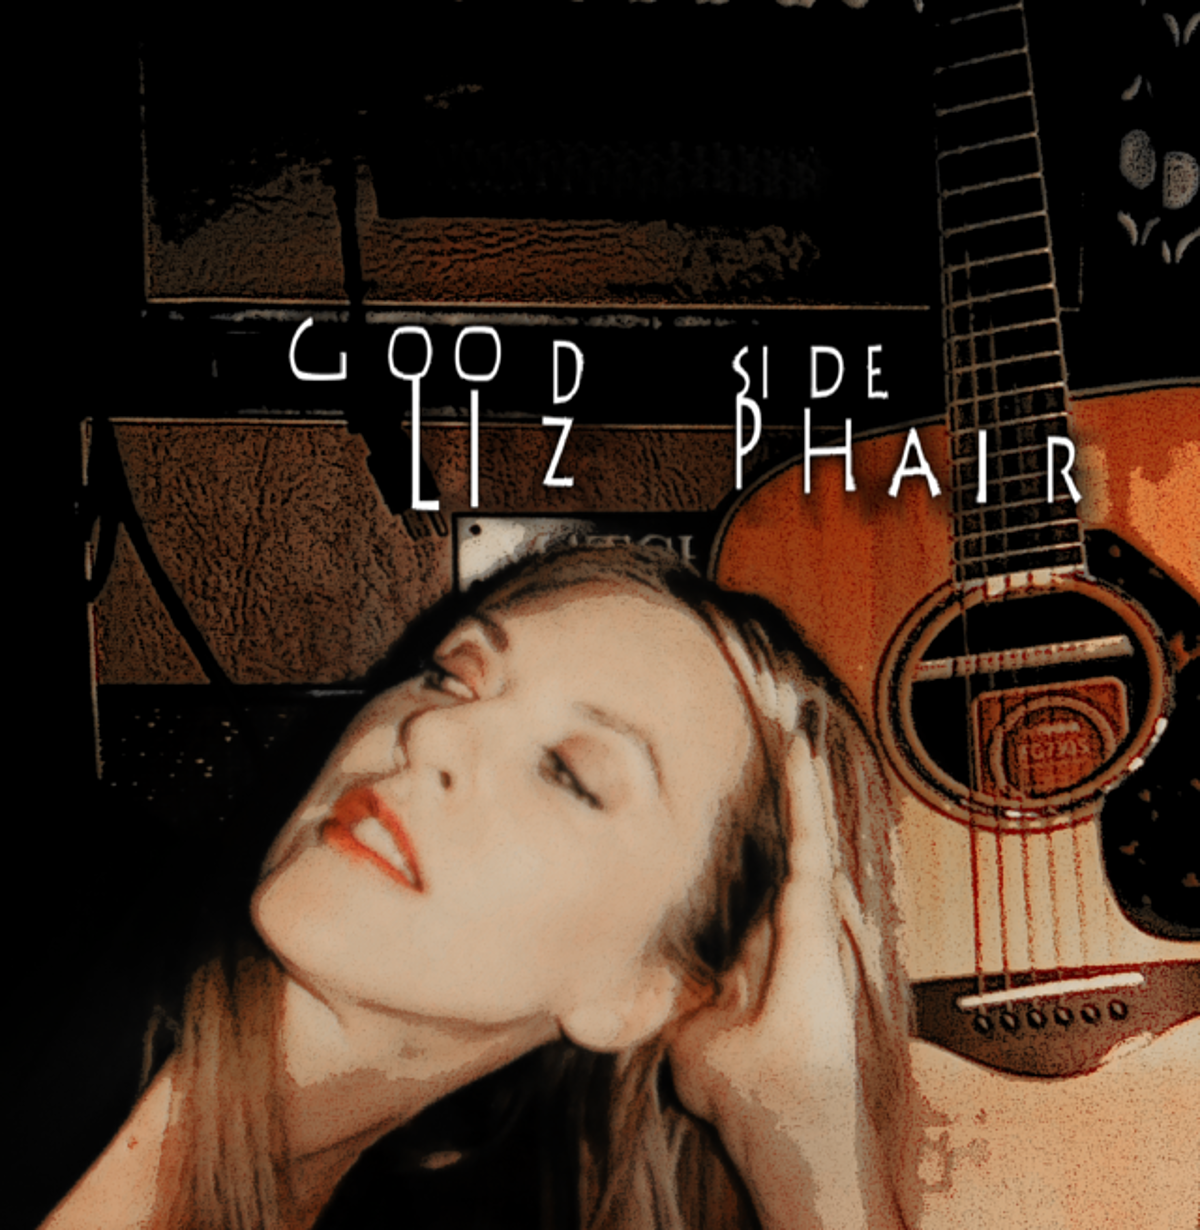 """Liz Phair preps first album in 10 years, shares new song """"Good Side"""""""